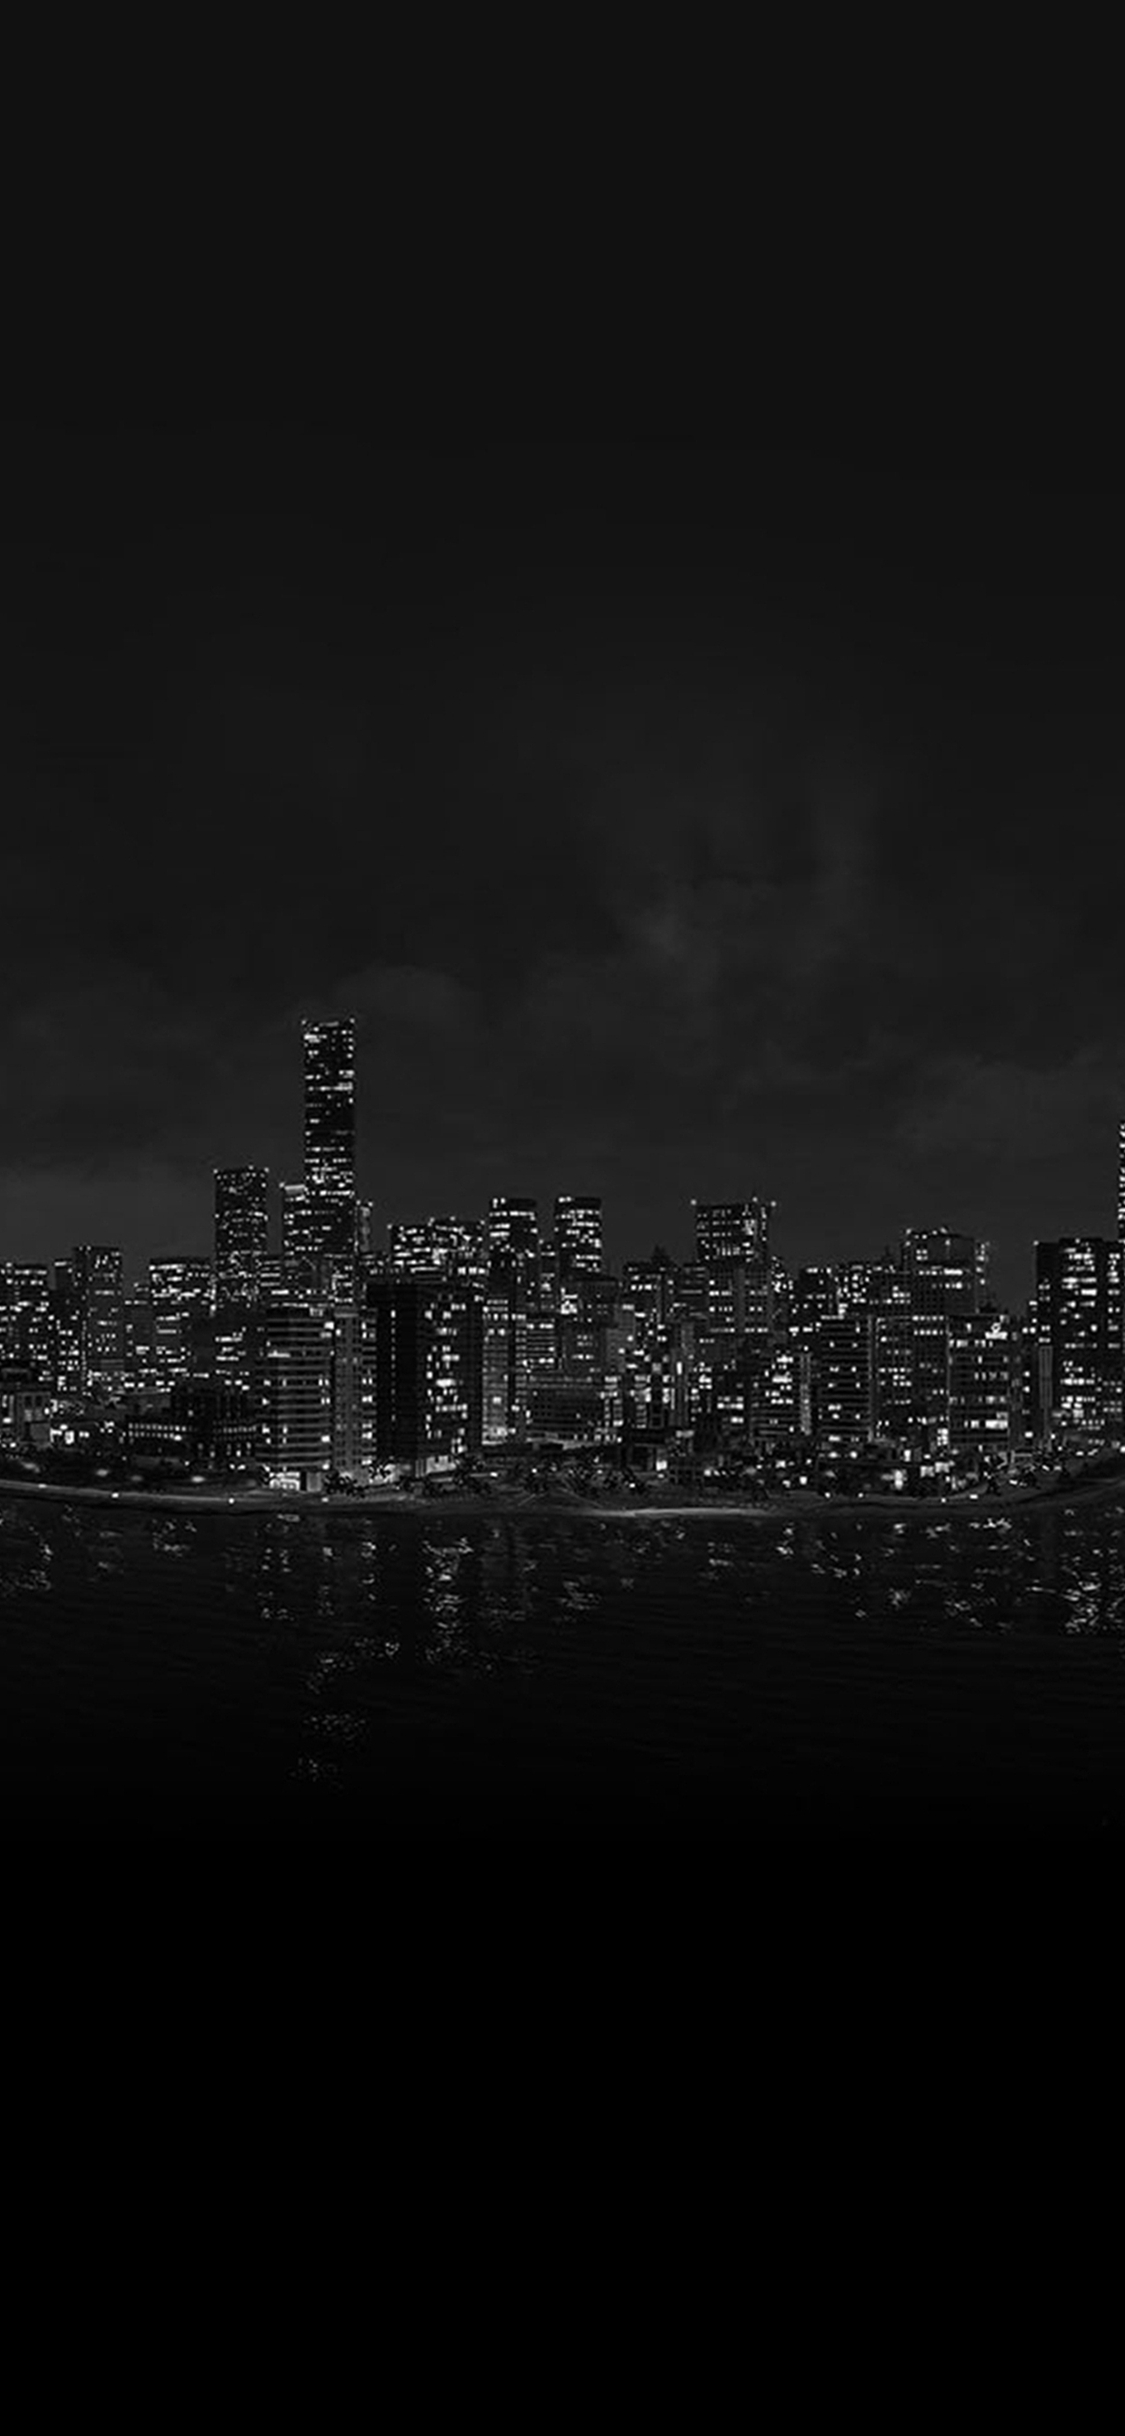 Watchdog Night City Light View From Sea Iphone X Wallpapers